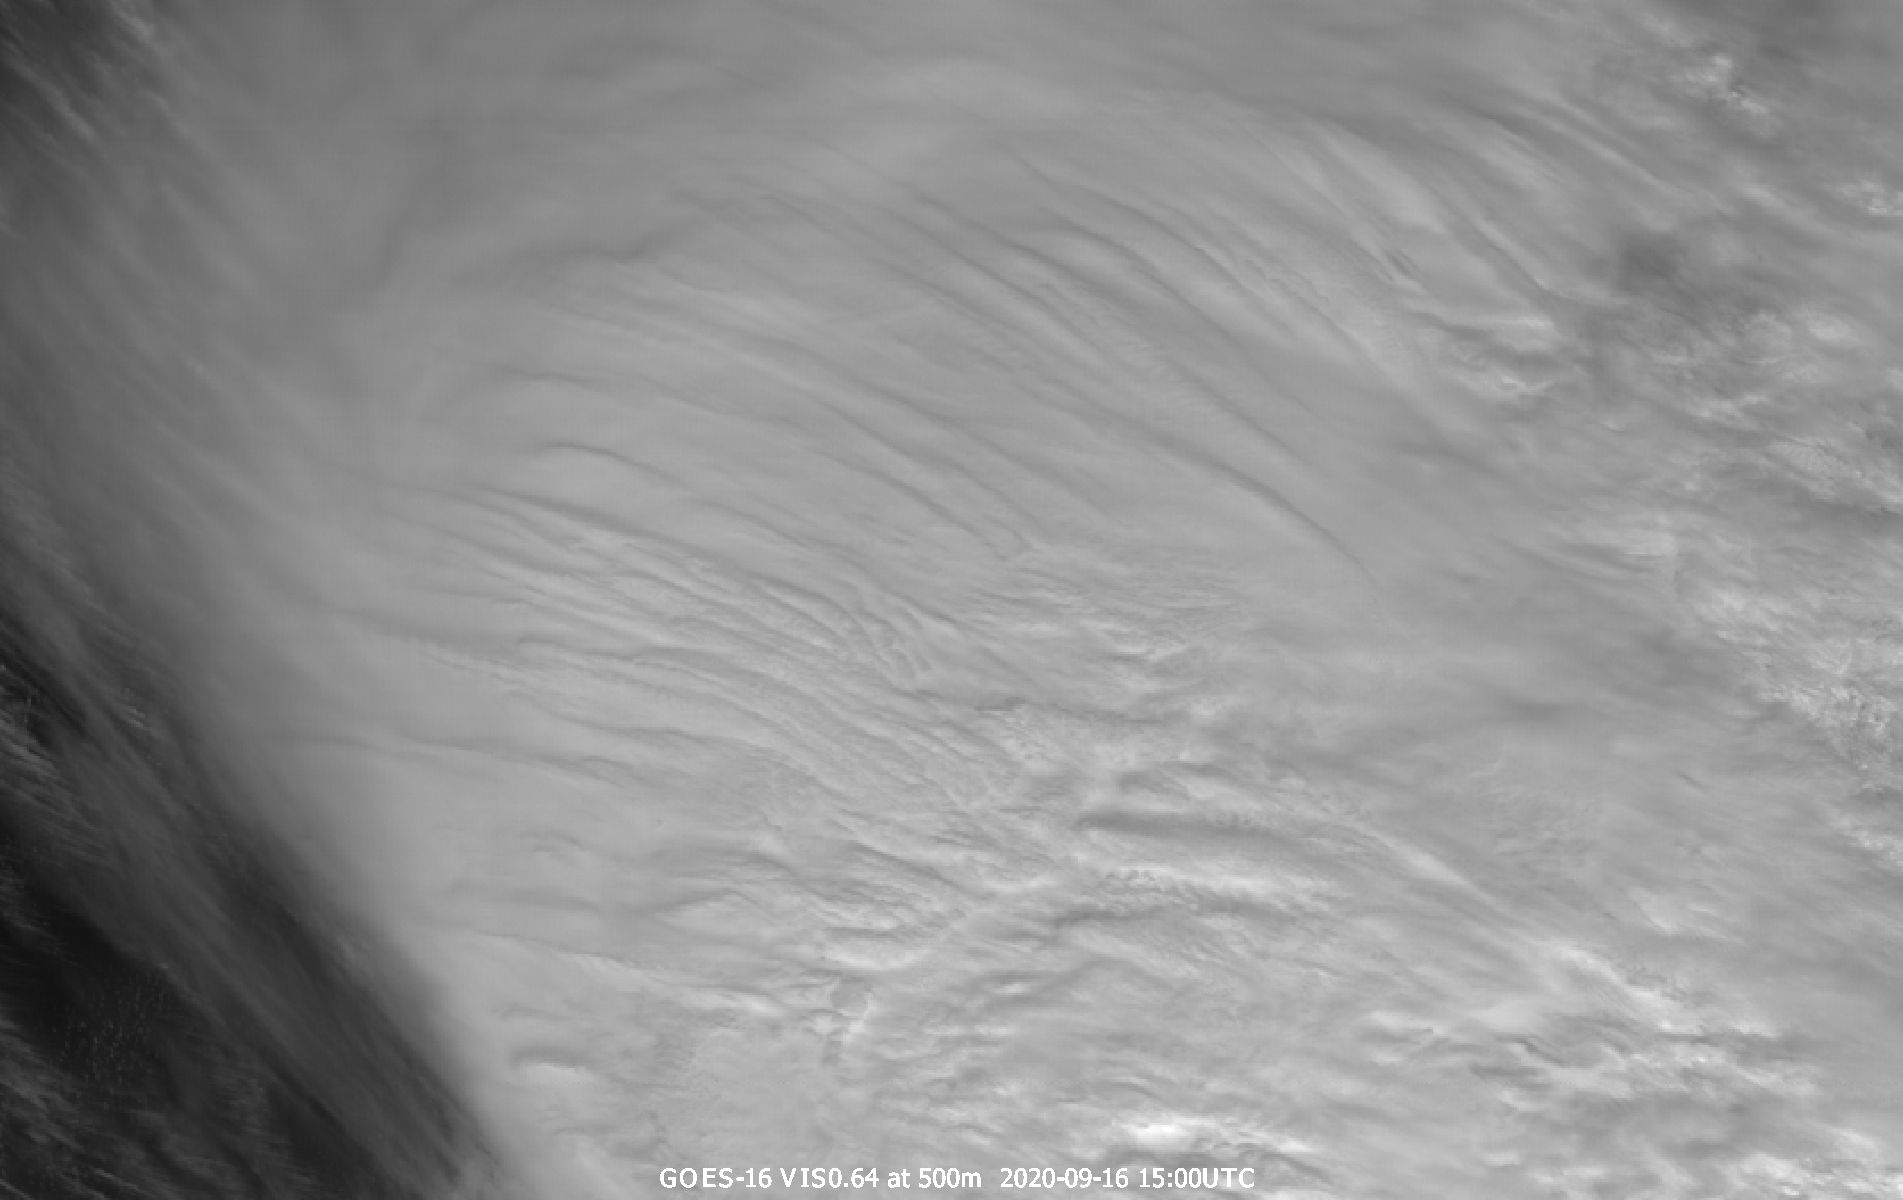 GOES-16 VIS0.64 channel with resolution of 500 m, 16 September 2020, 15:00 UTC